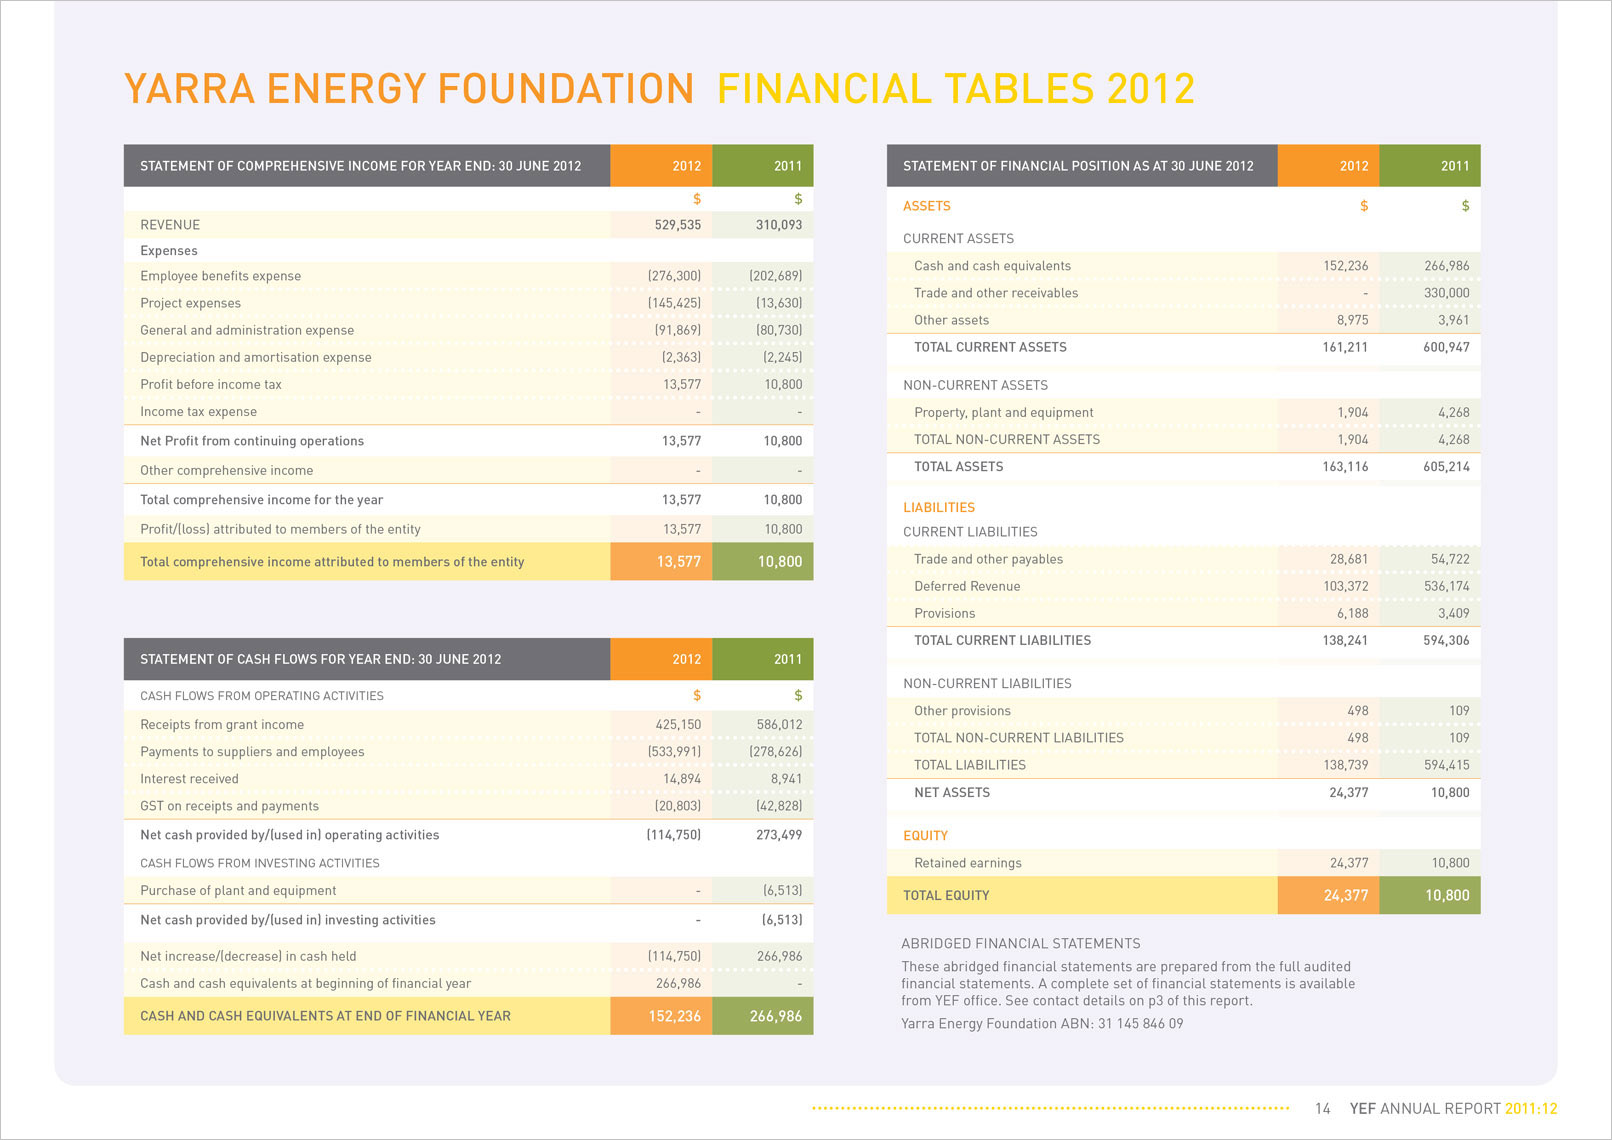 p14 Annual Report Designed by Shane Nagle YEF Yarra Energy Foundation Annual Report 2012